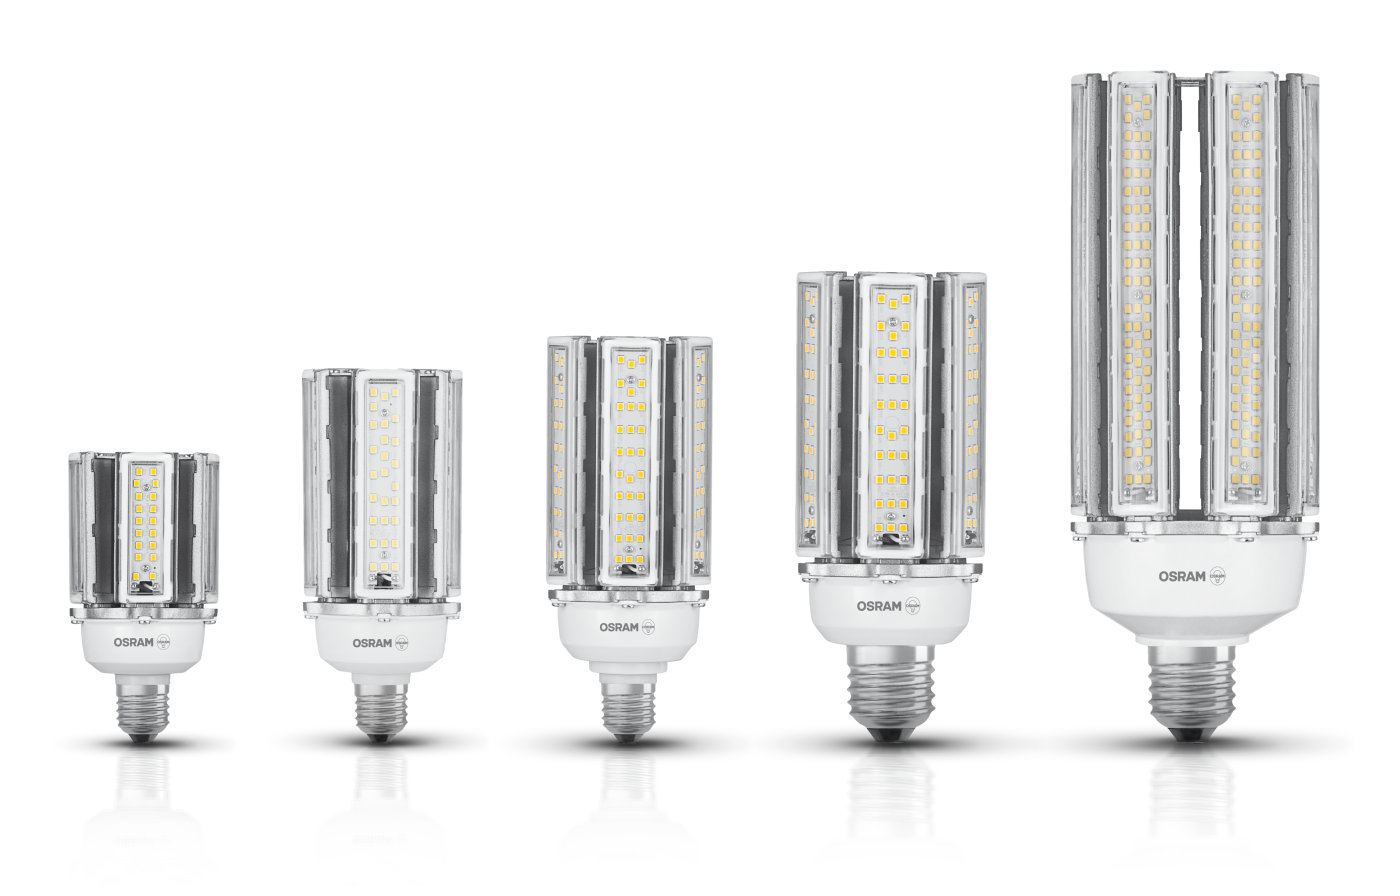 Suche Led Lampen Outdoor Lampen Hql Led Pro